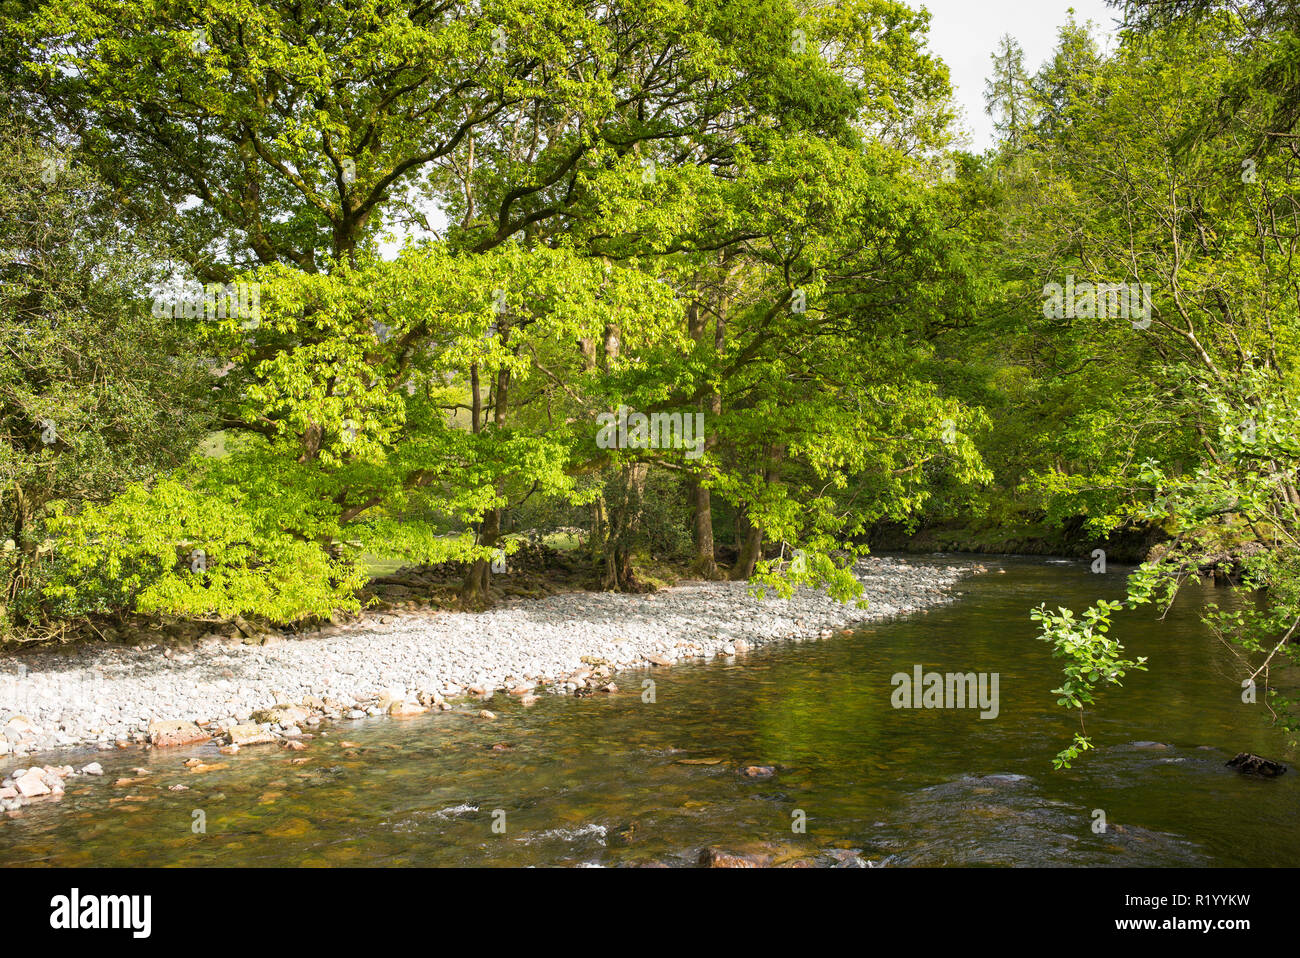 River Esk at Eskdale in the Lake District, Cumbria, England - Stock Image